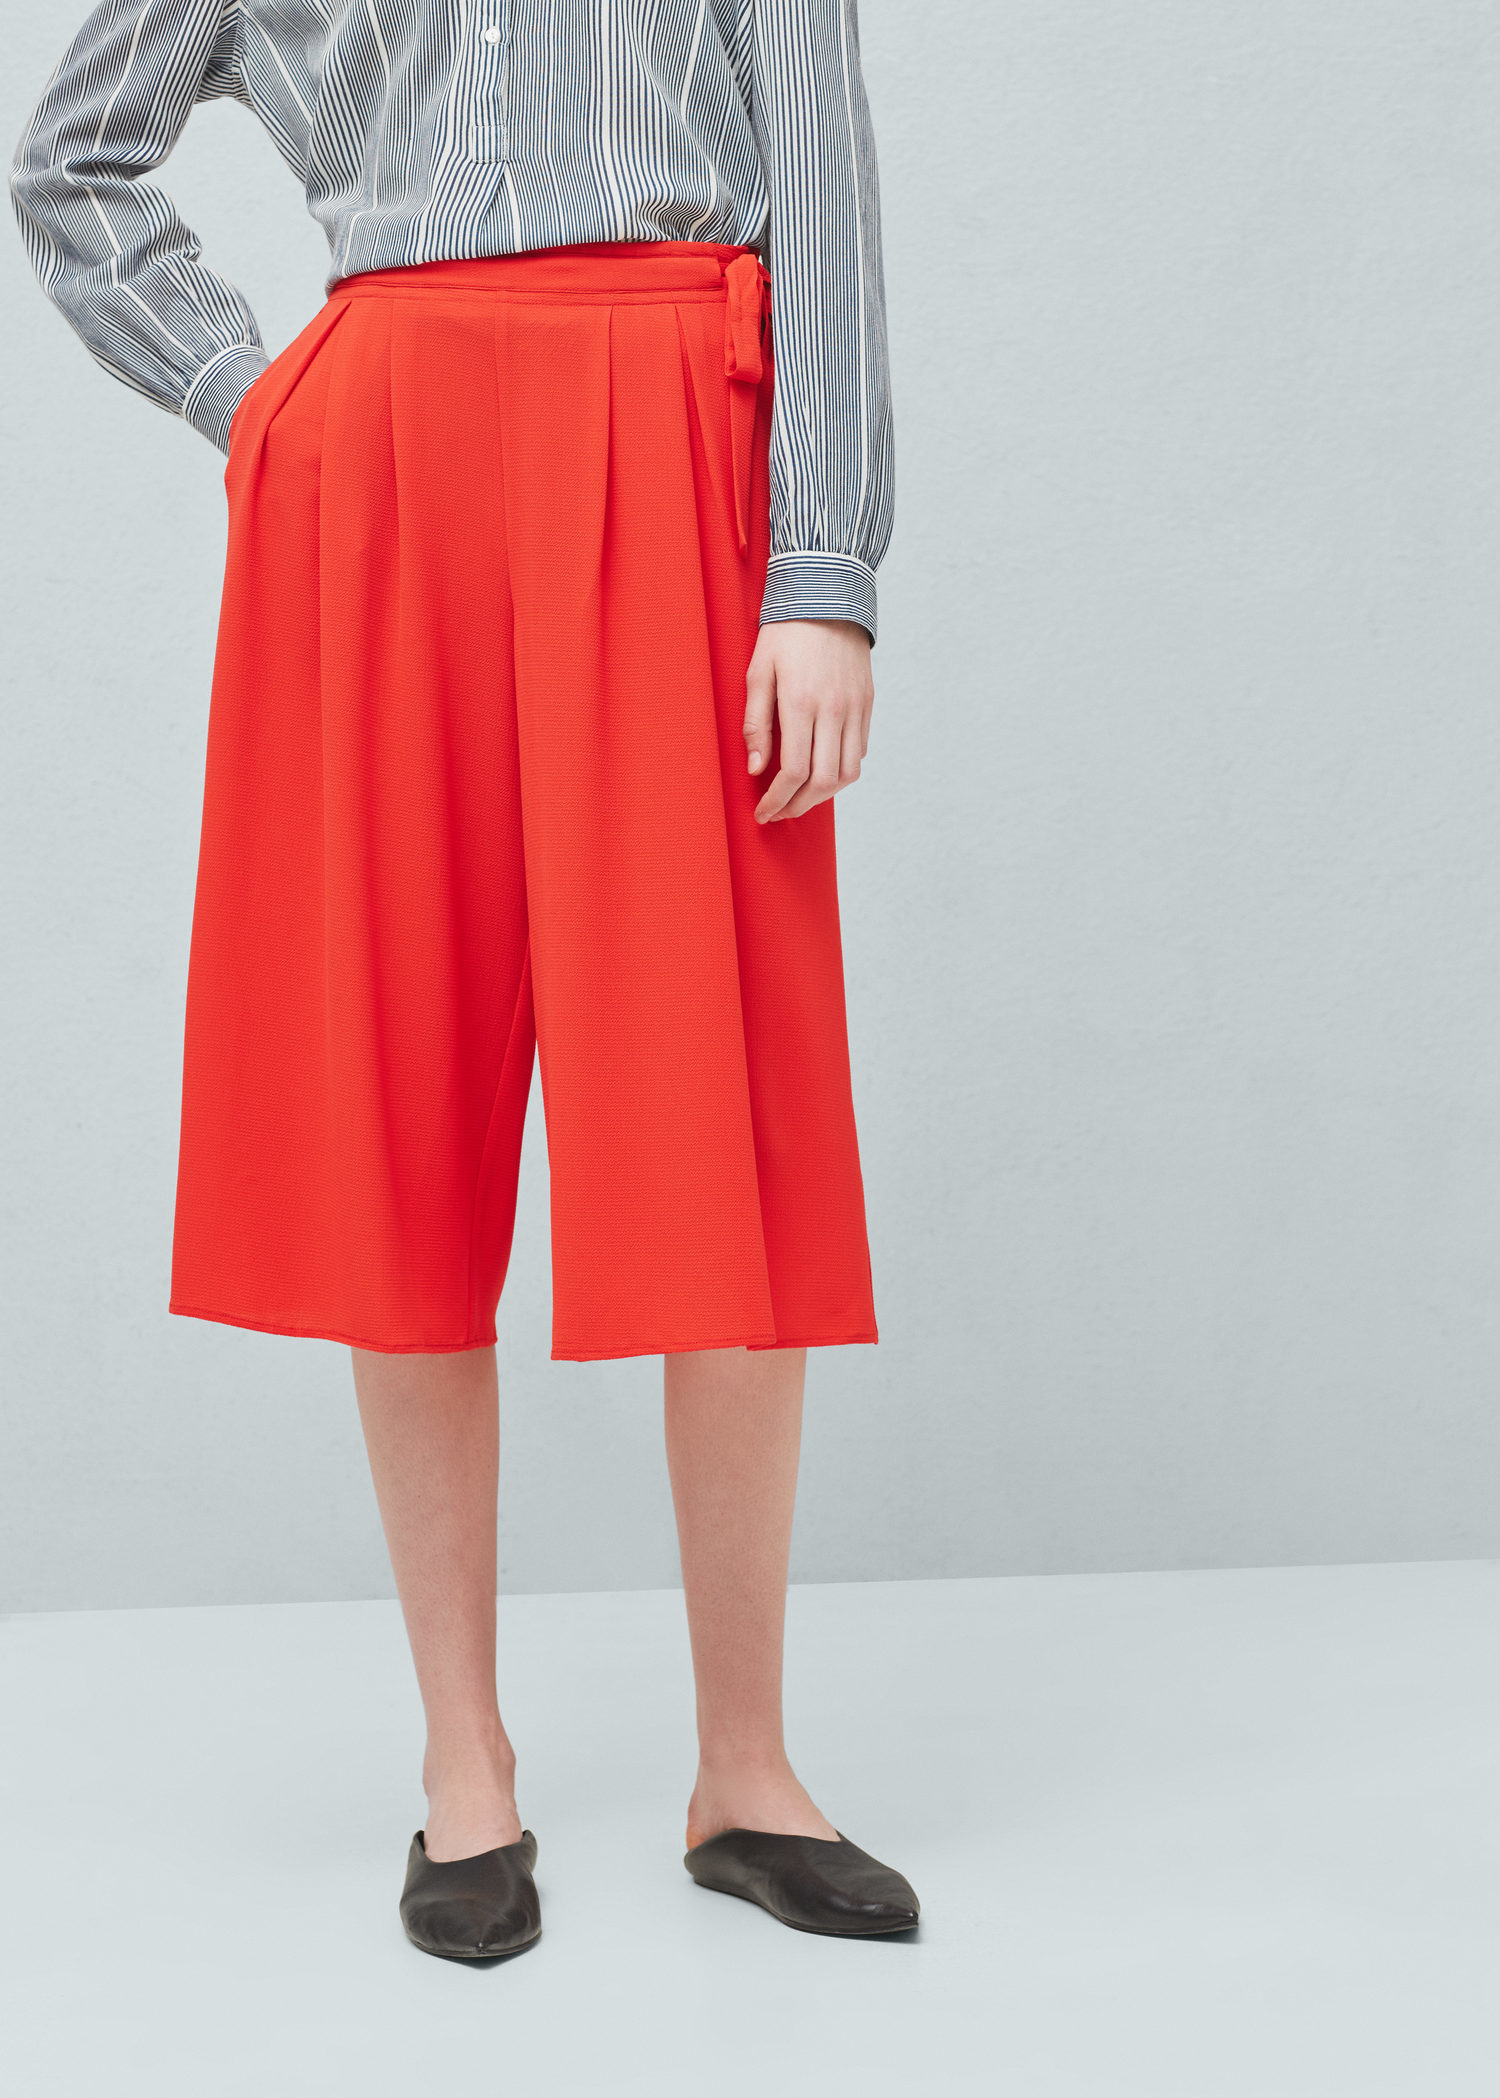 Lyst - Mango Cropped Palazzo Trousers in Red